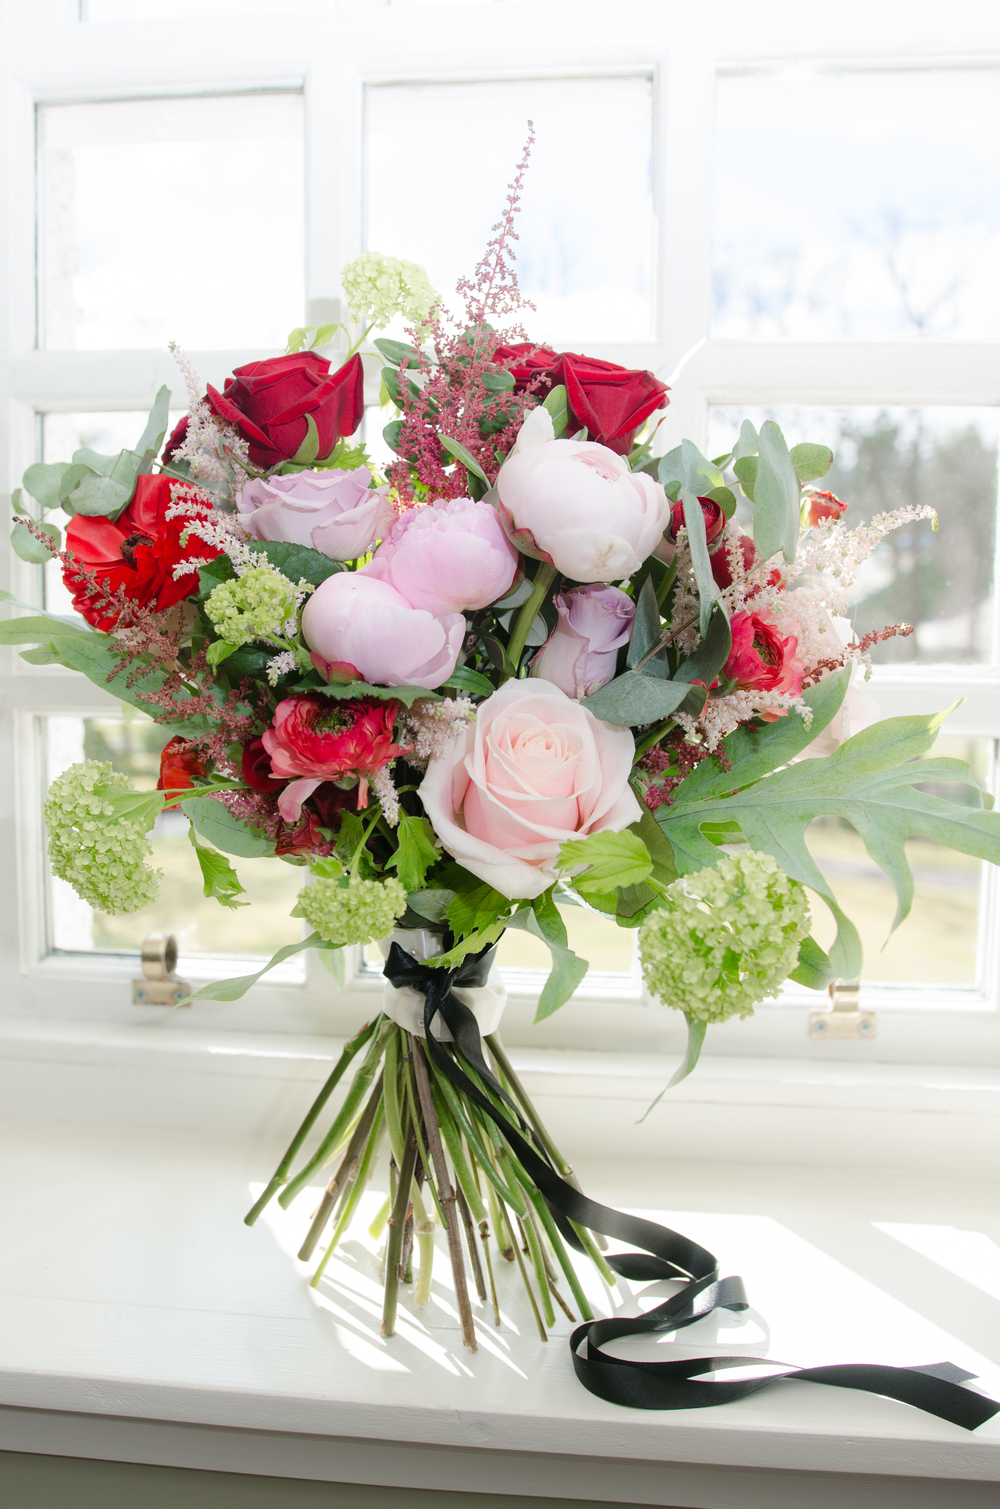 the-floral-design-boutique-glasgow-wedding-florist-wedding-flowers-5